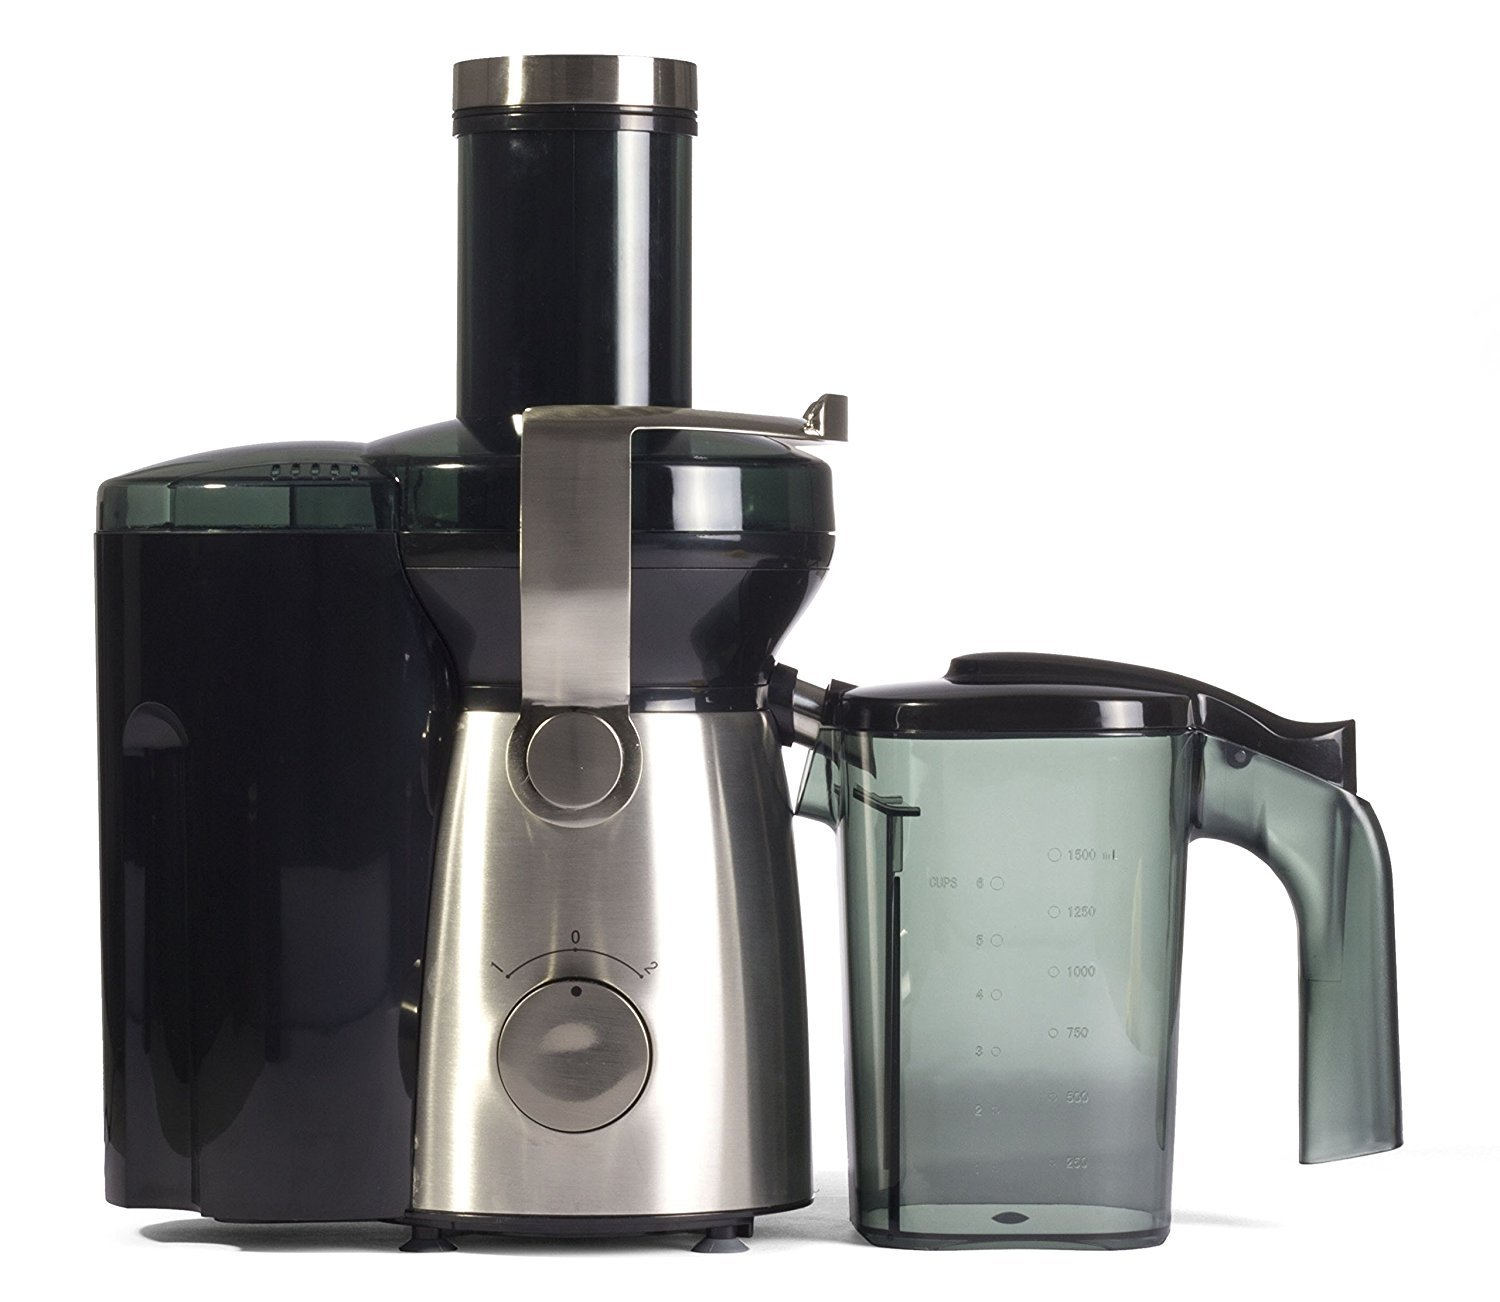 Igenix IG8810 Whole Fruit Juicer, 1000 W - Stainless Steel